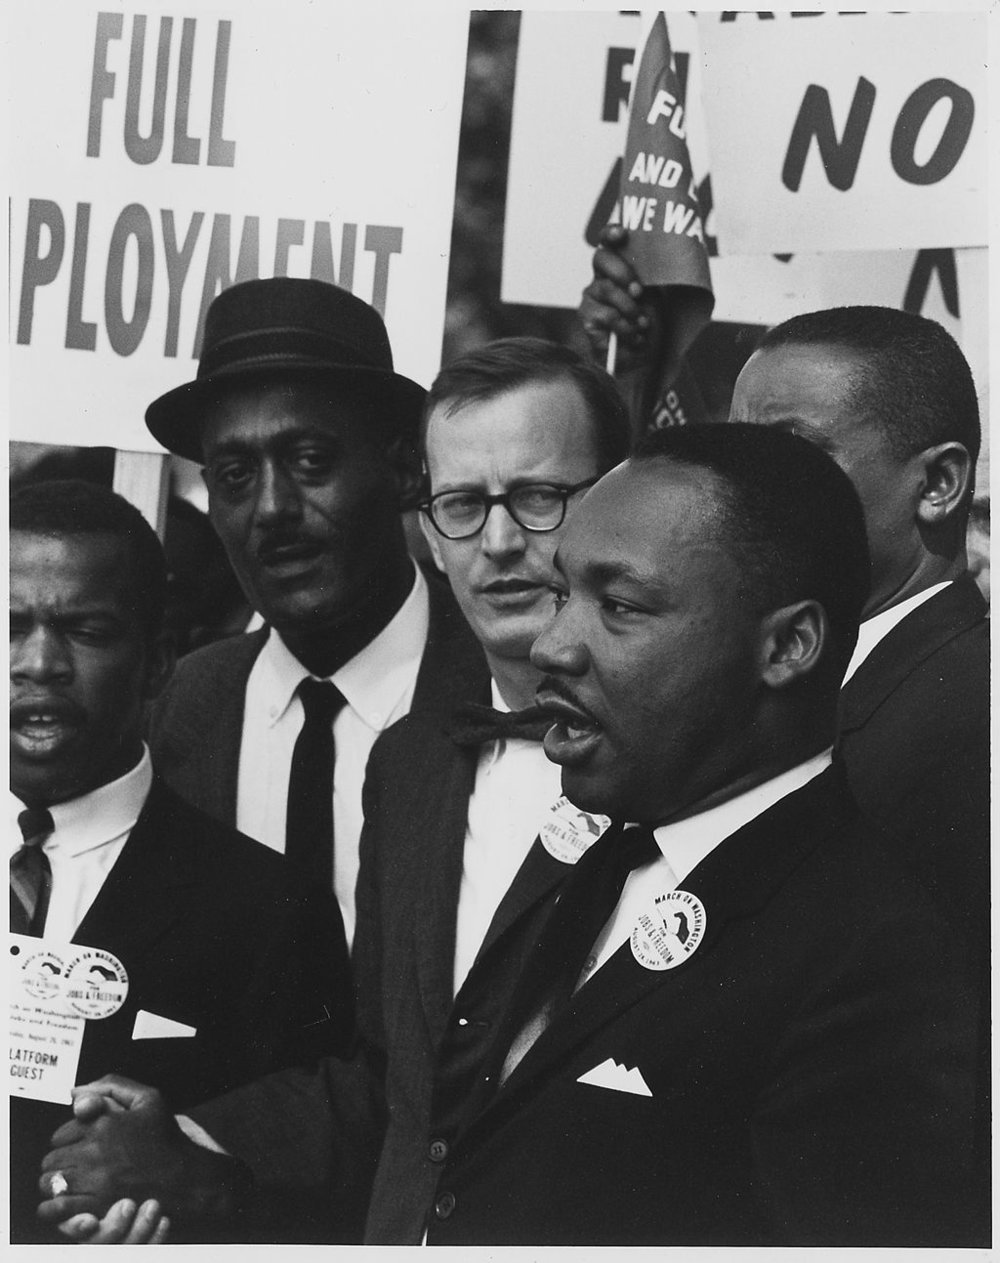 Civil_Rights_March_on_Washington,_D.C._(Dr._Martin_Luther_King,_Jr.,_President_of_the_Southern_Christian_Leadership..._-_NARA_-_542014.jpg